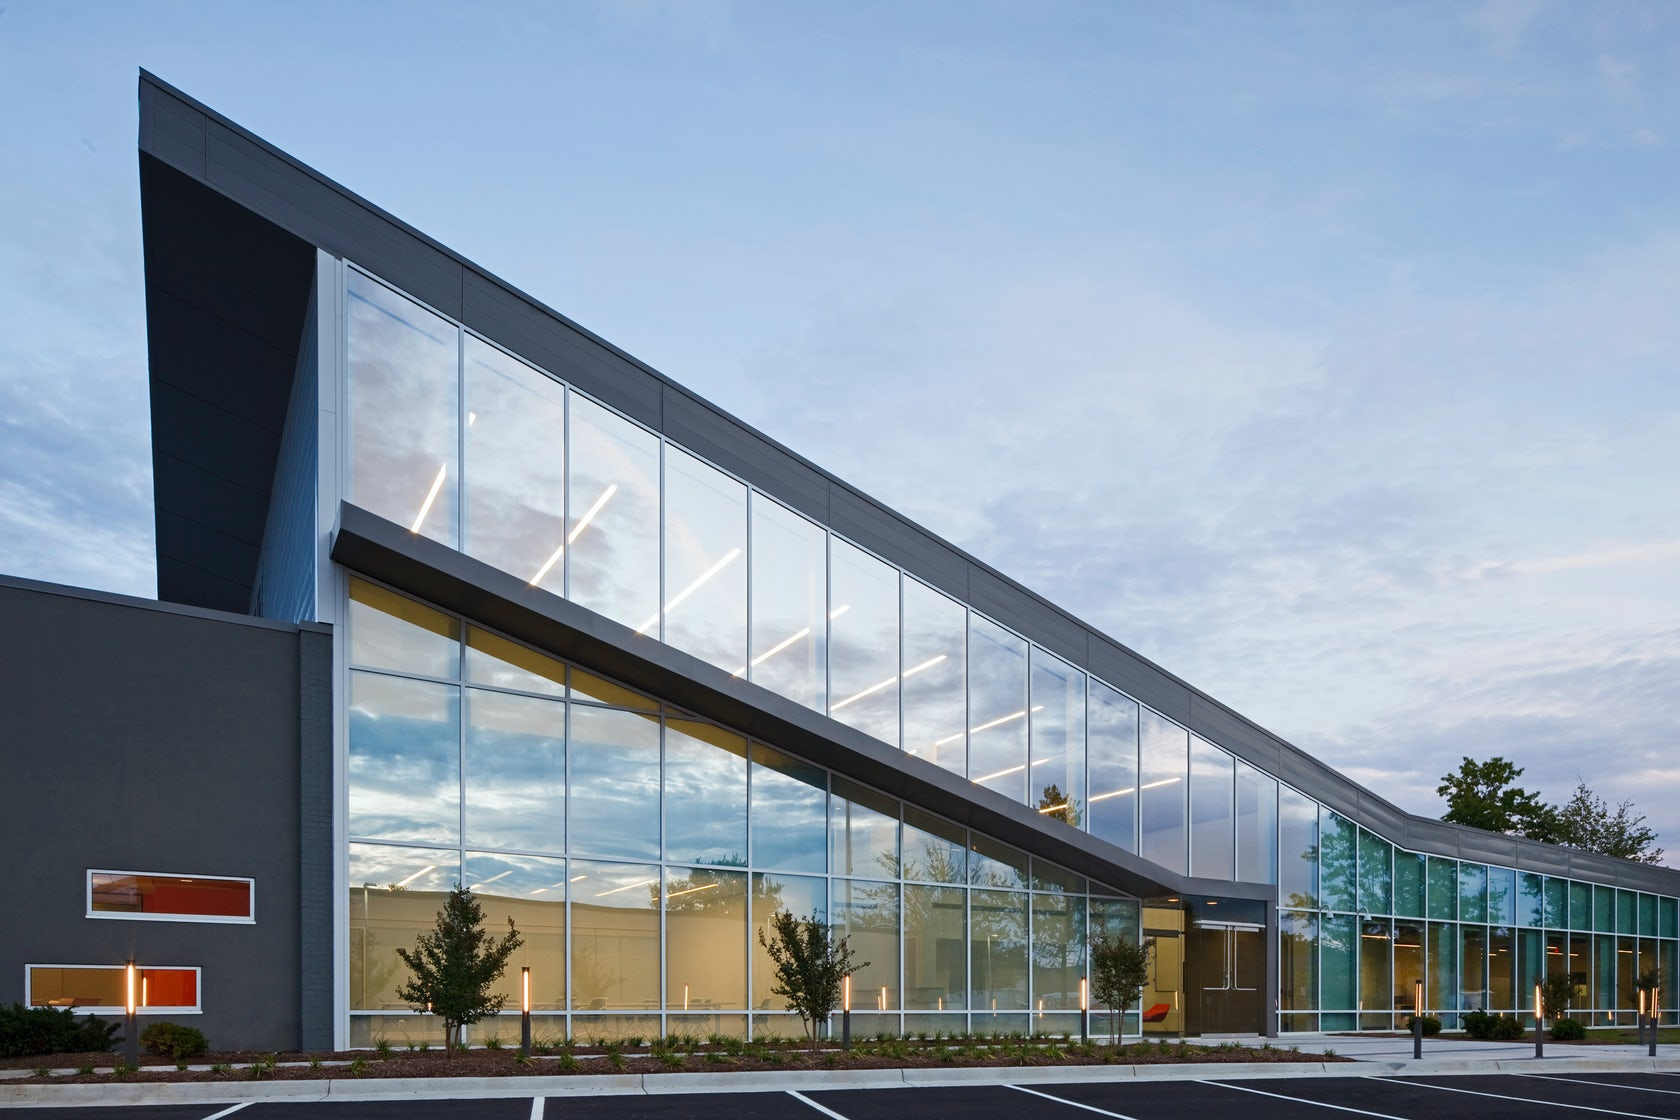 Transurban operations center architizer for Industrial building design